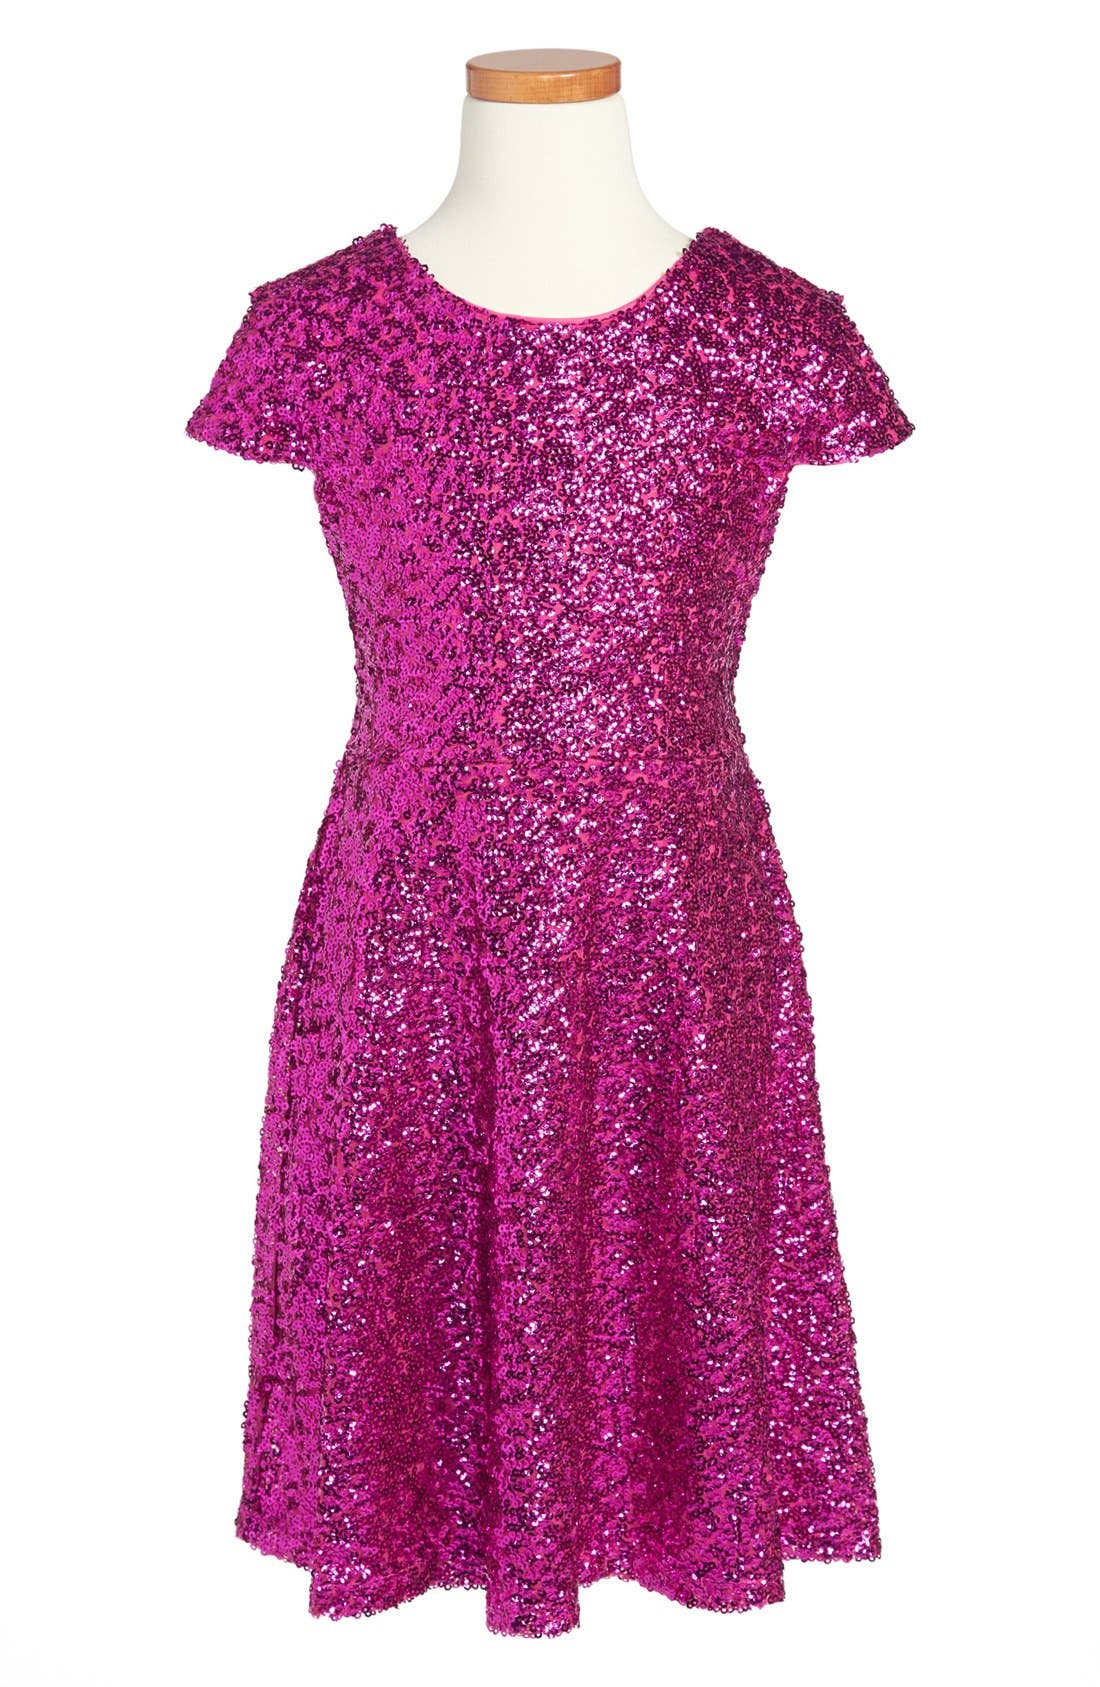 Alternate Image 1 Selected - Roxette Cap Sleeve Sequin Dress (Big Girls)